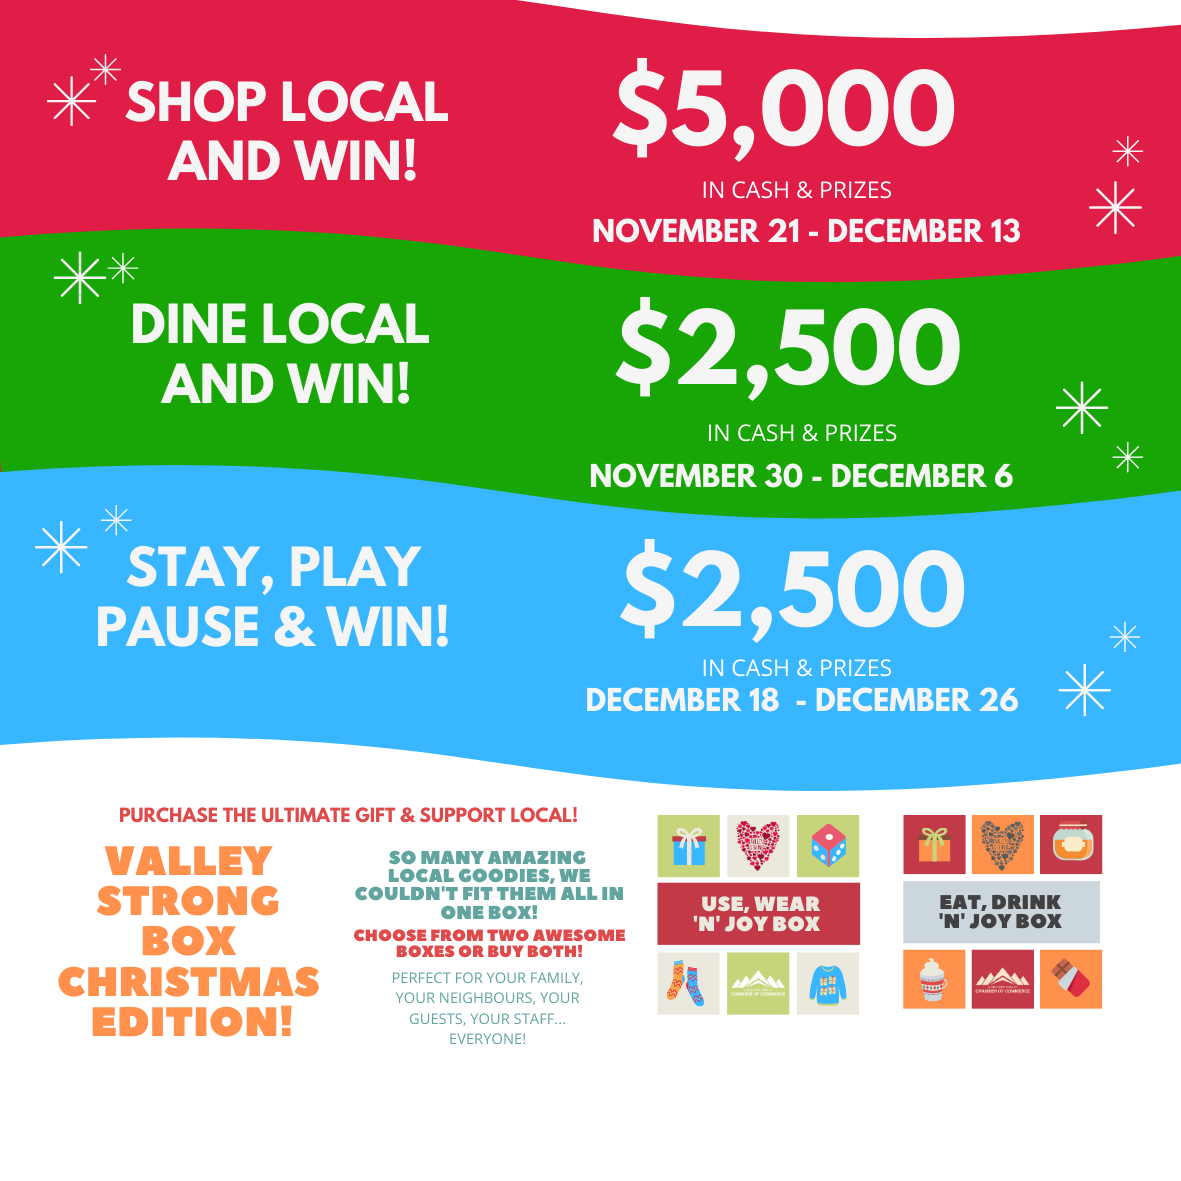 Support Local & WIN 10,000 in Cash & Prizes